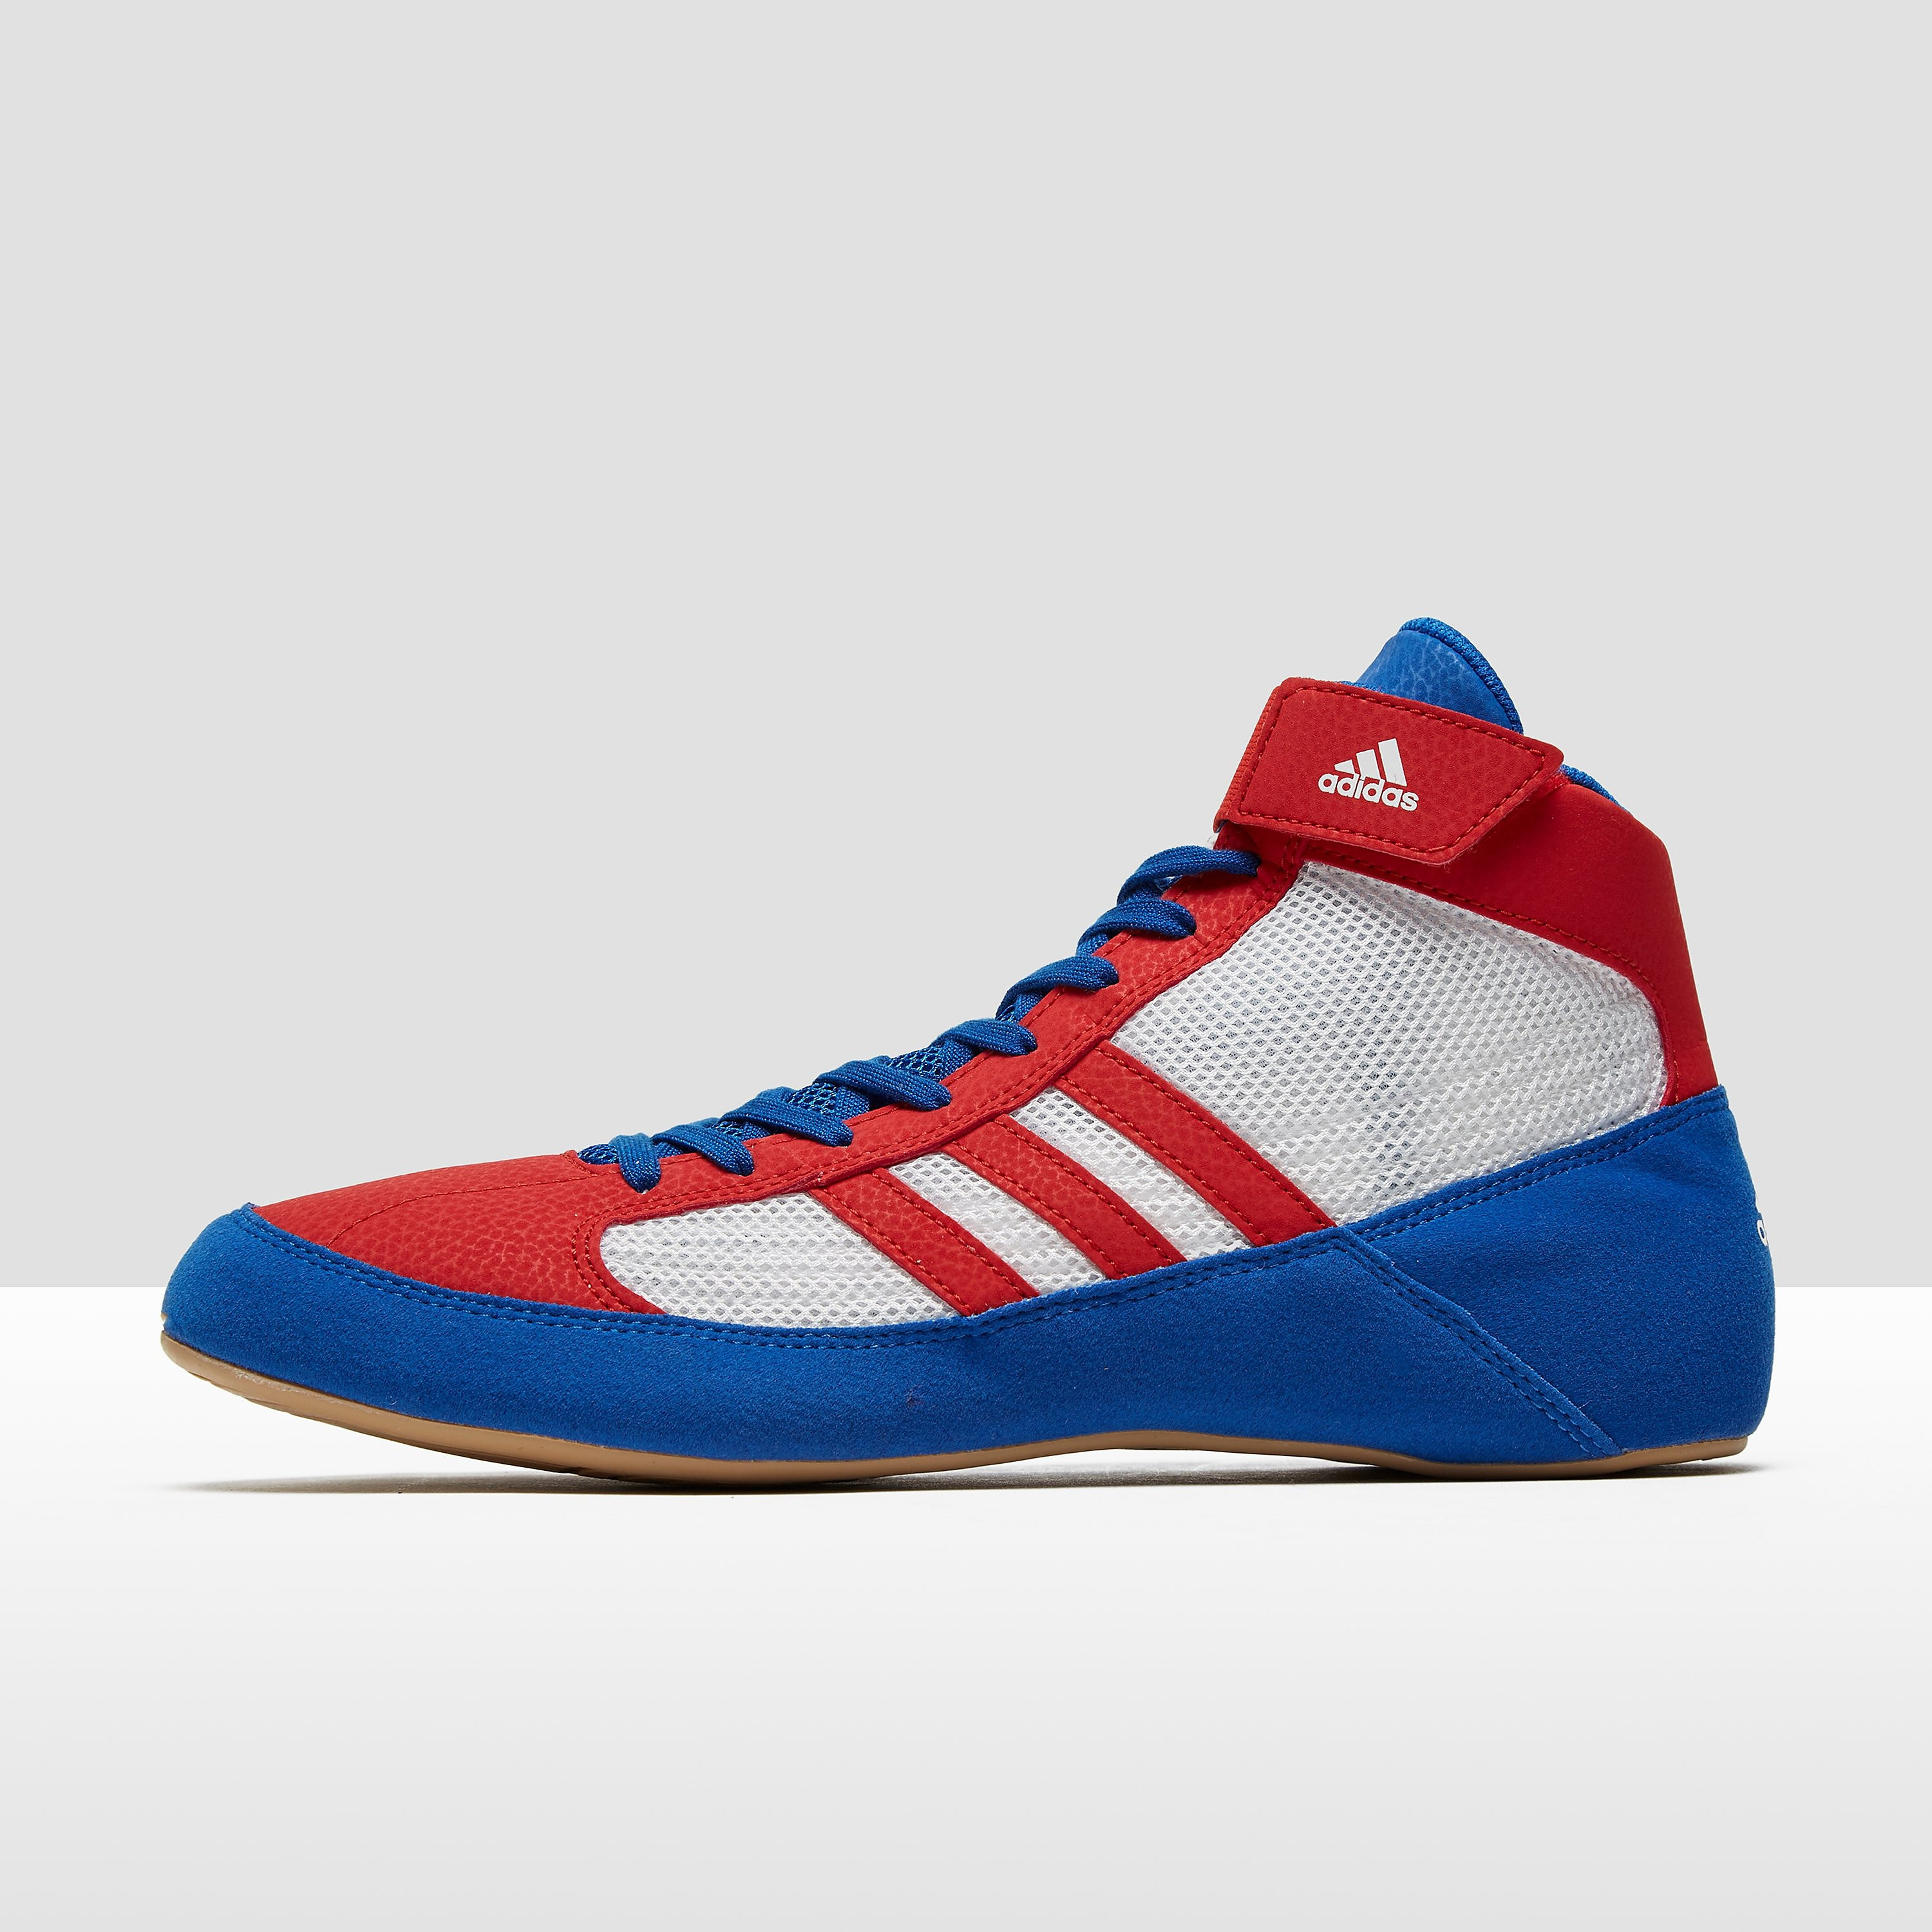 adidas Men's Havoc Wrestling Boots